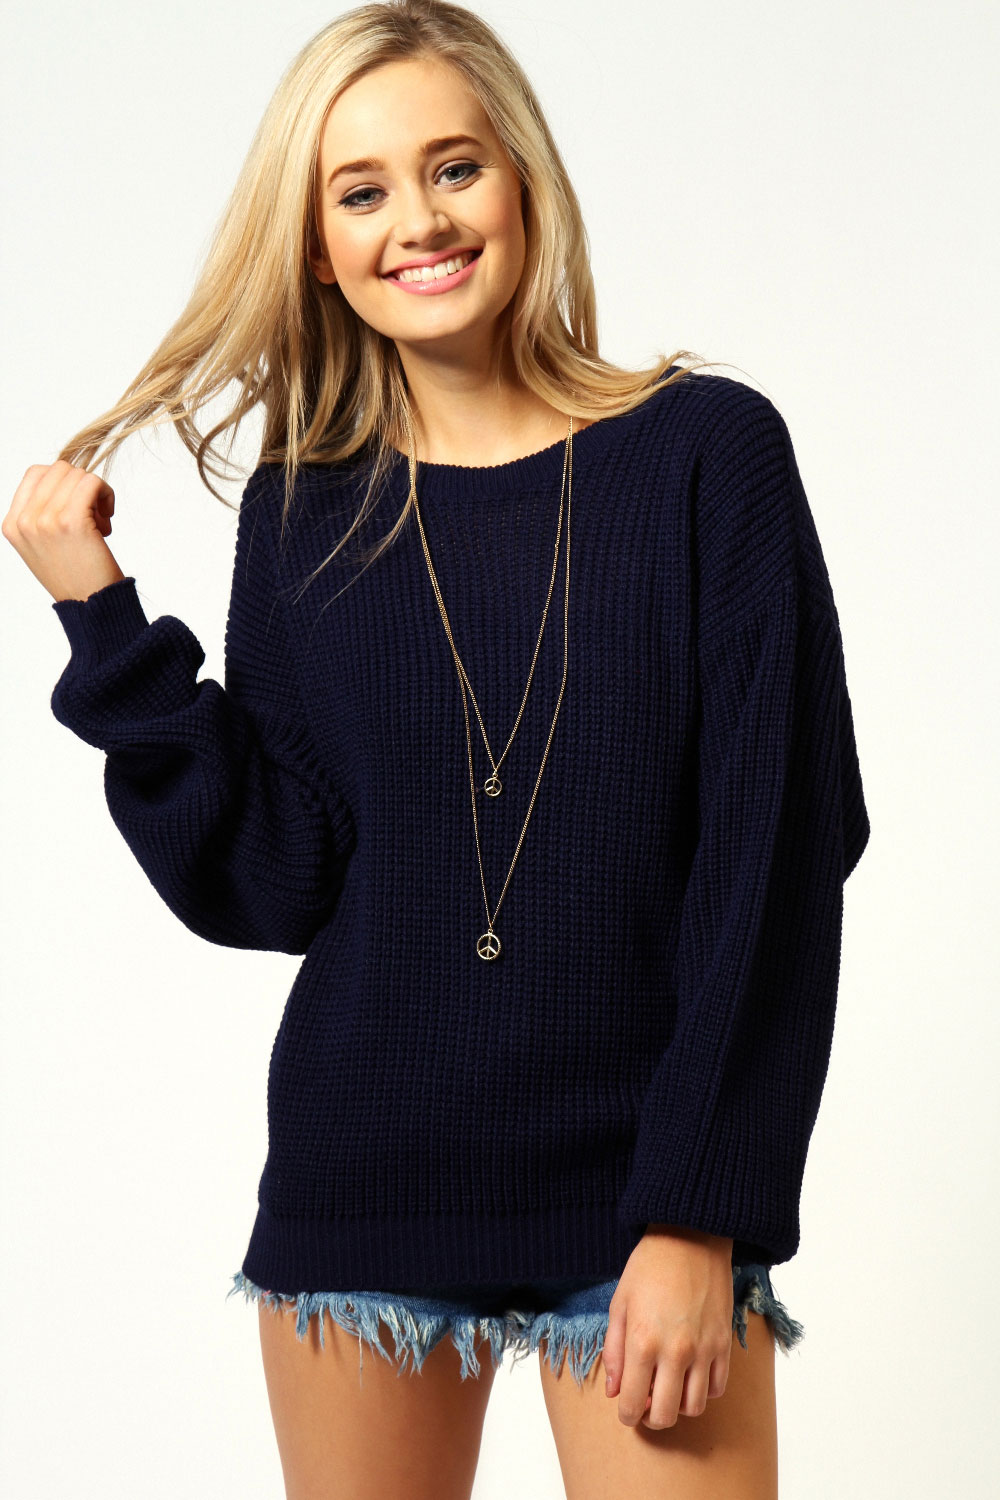 Buy Jumpers from the Womens department at Debenhams. You'll find the widest range of Jumpers products online and delivered to your door. Shop today!